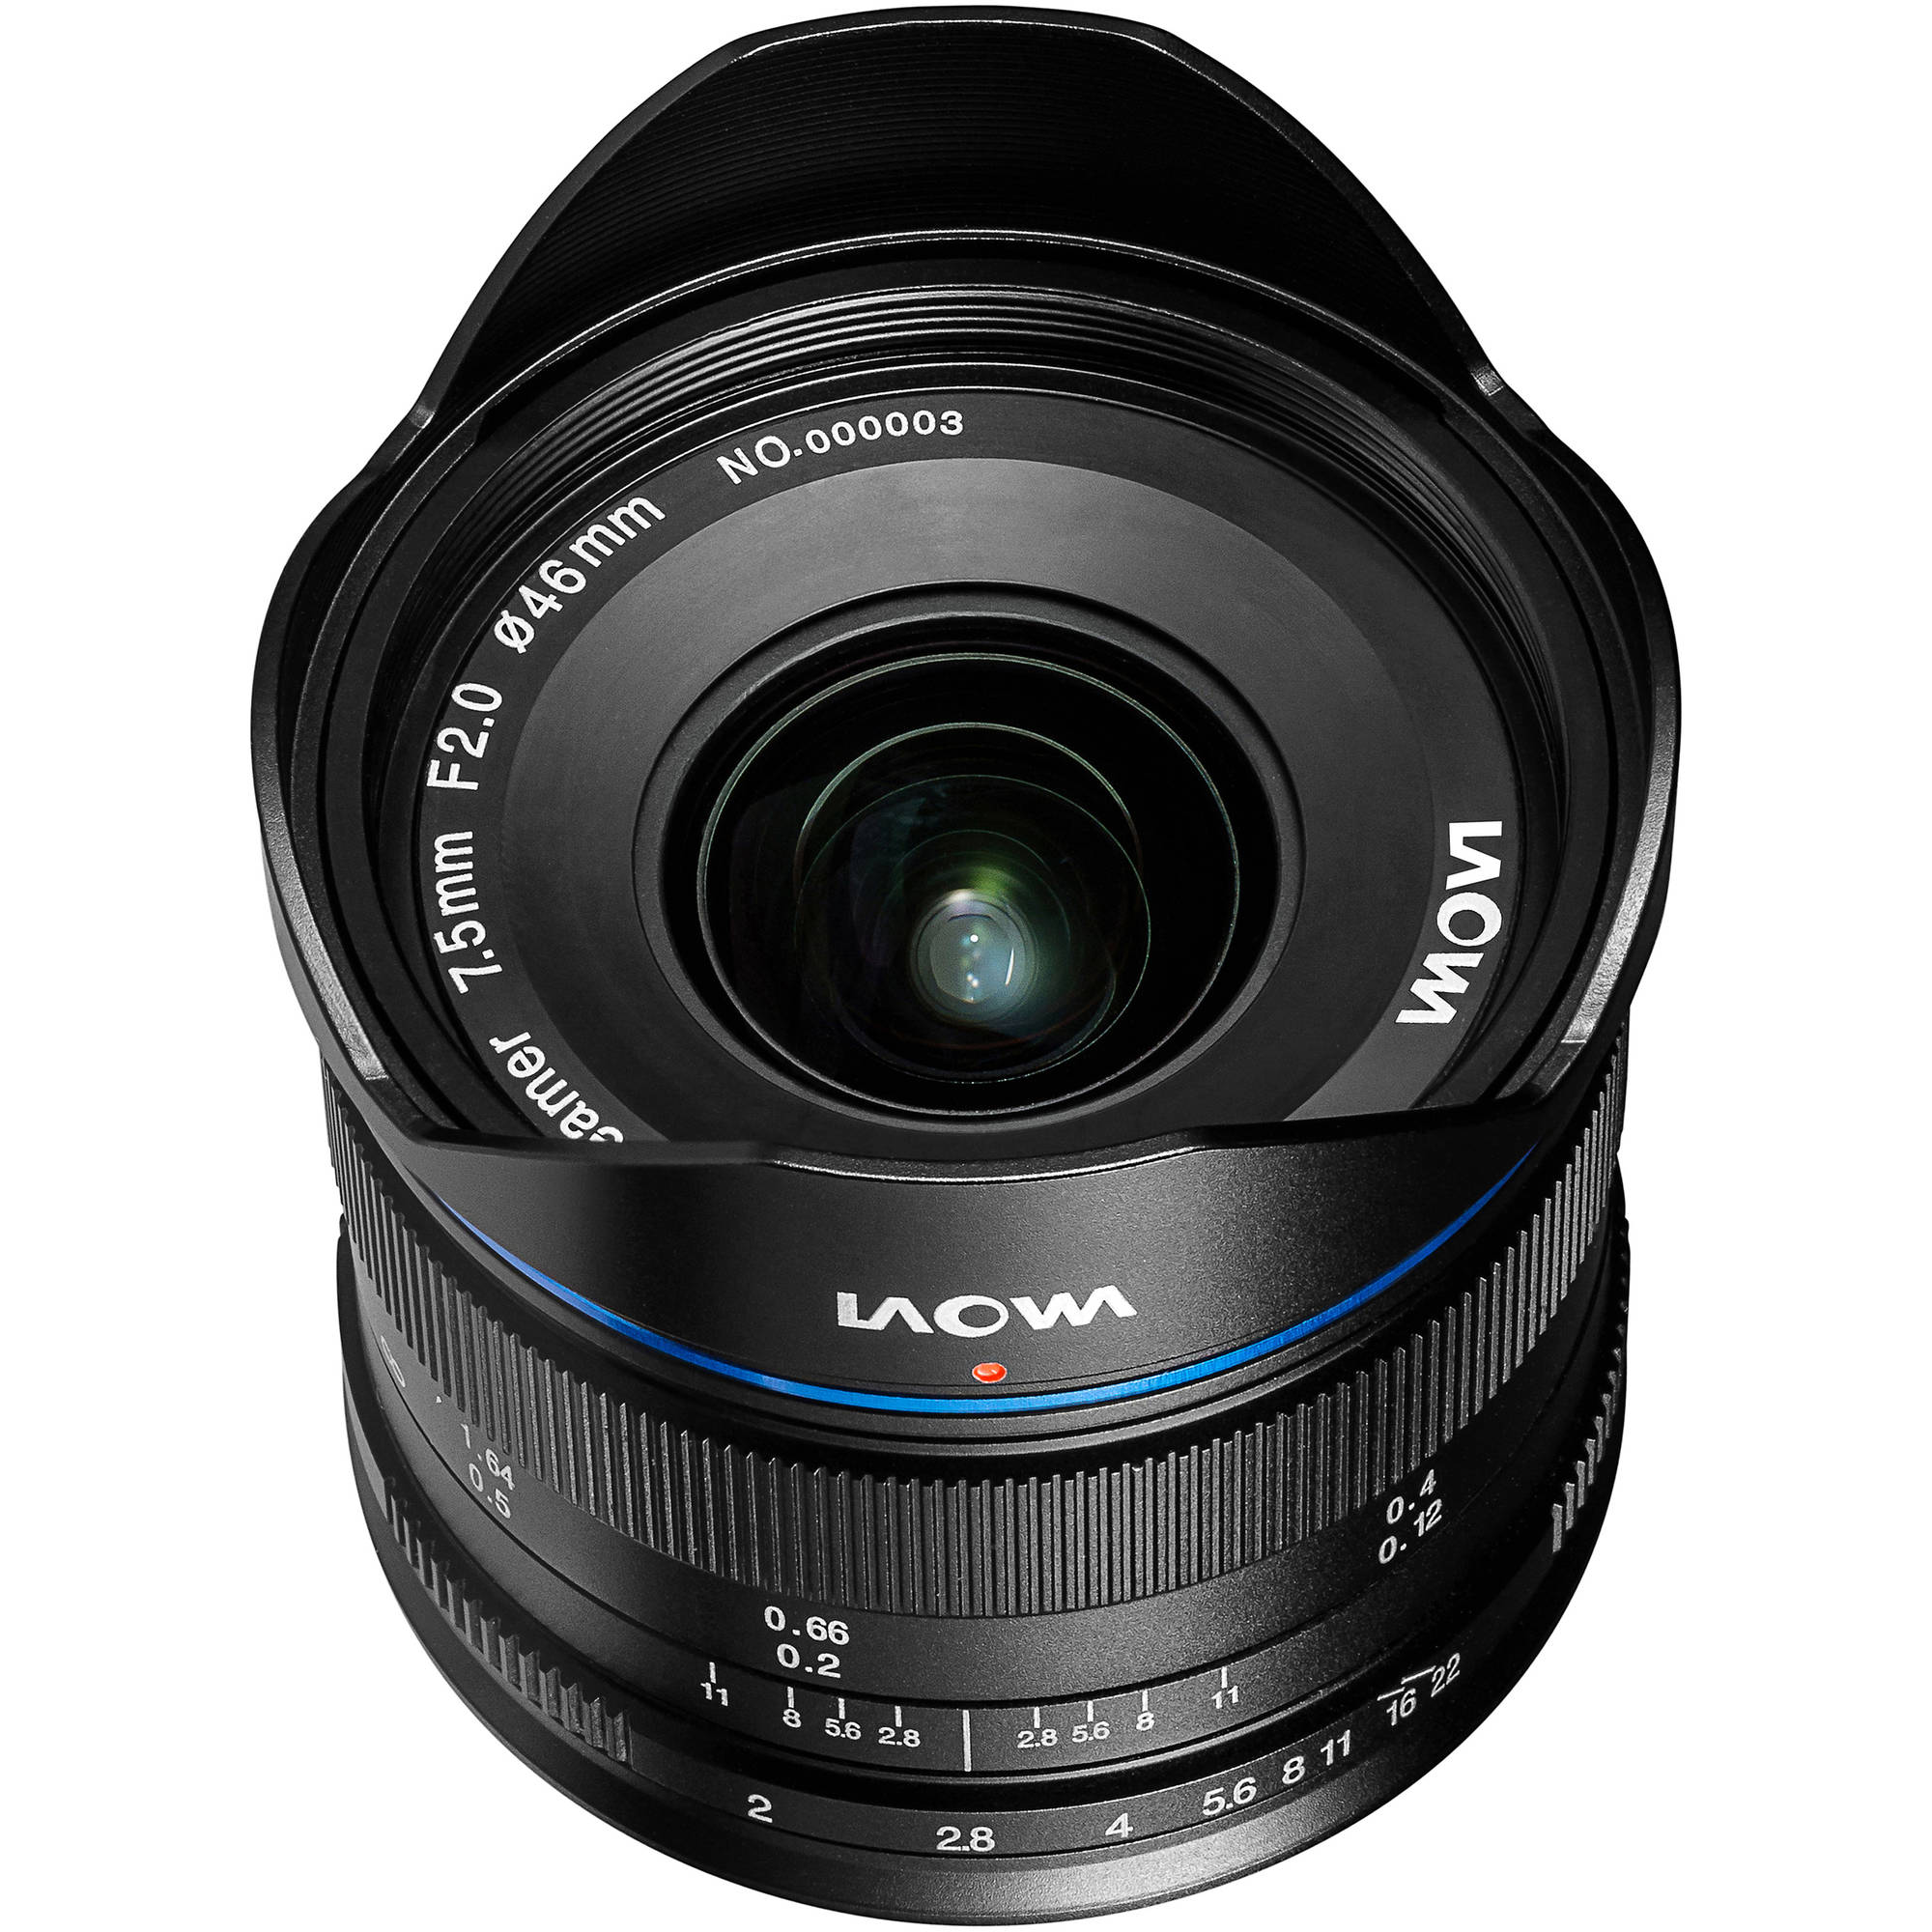 Venus Optics Laowa 7.5mm f/2 MFT Lens for Micro Four Thirds (Lightweight Black)